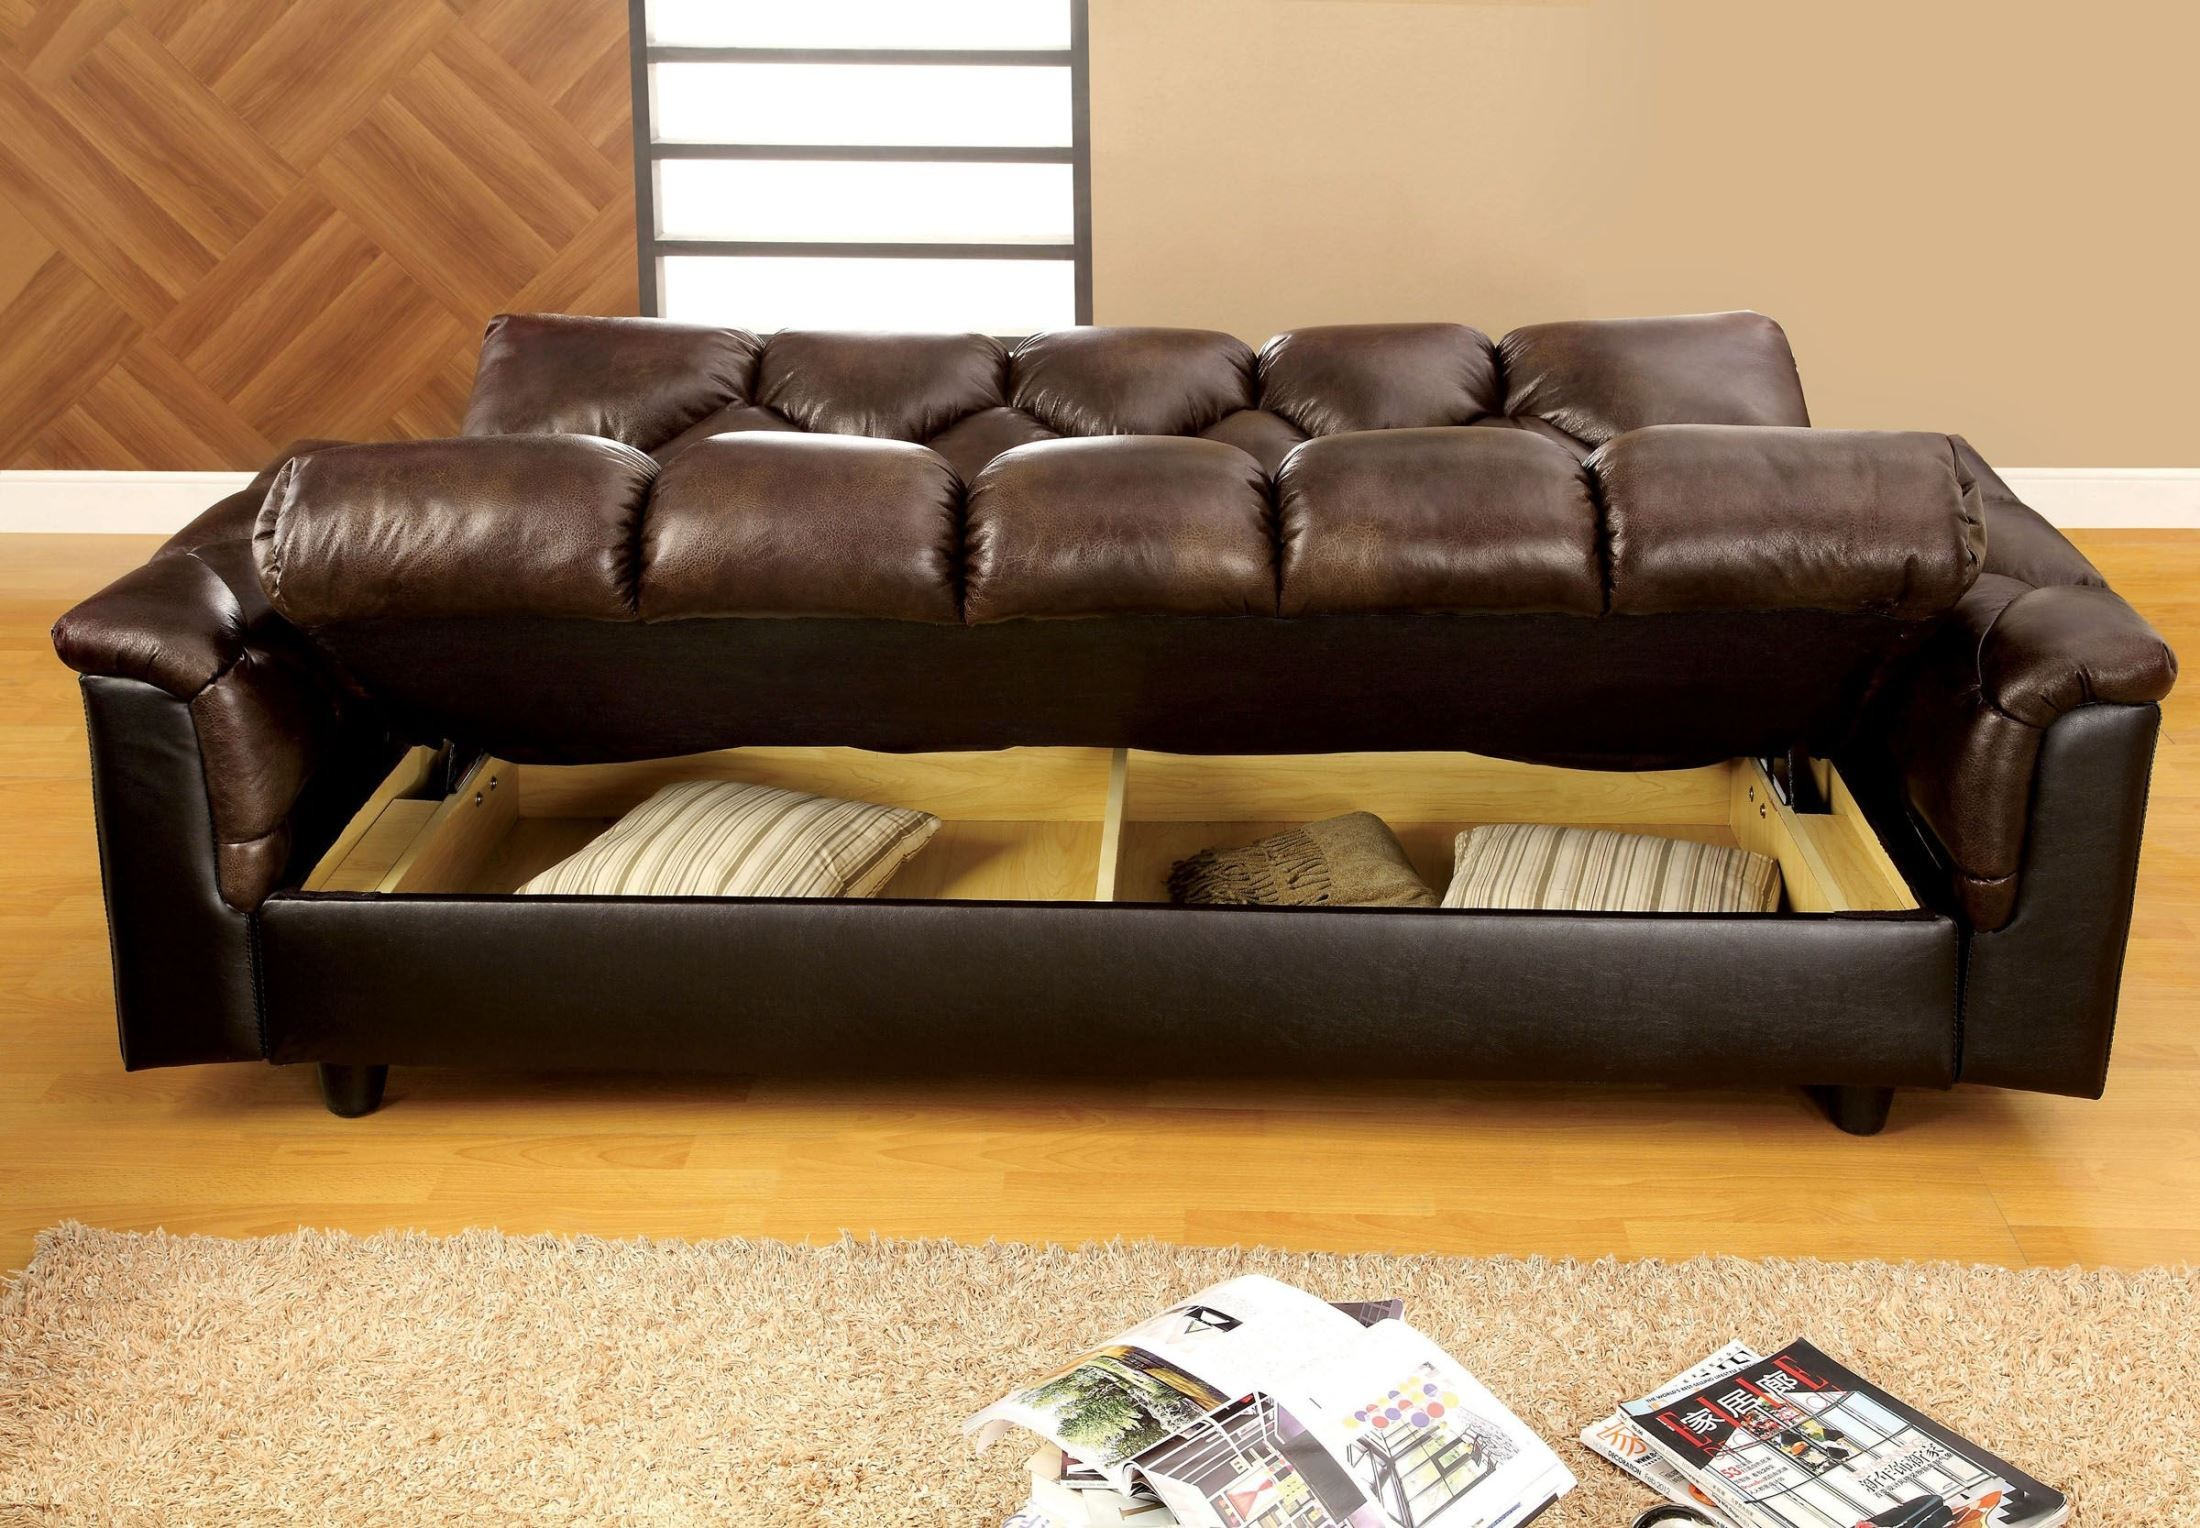 crawford futon sofa bed with storage natuzzi edition collection leather reviews bowie brown like from furniture